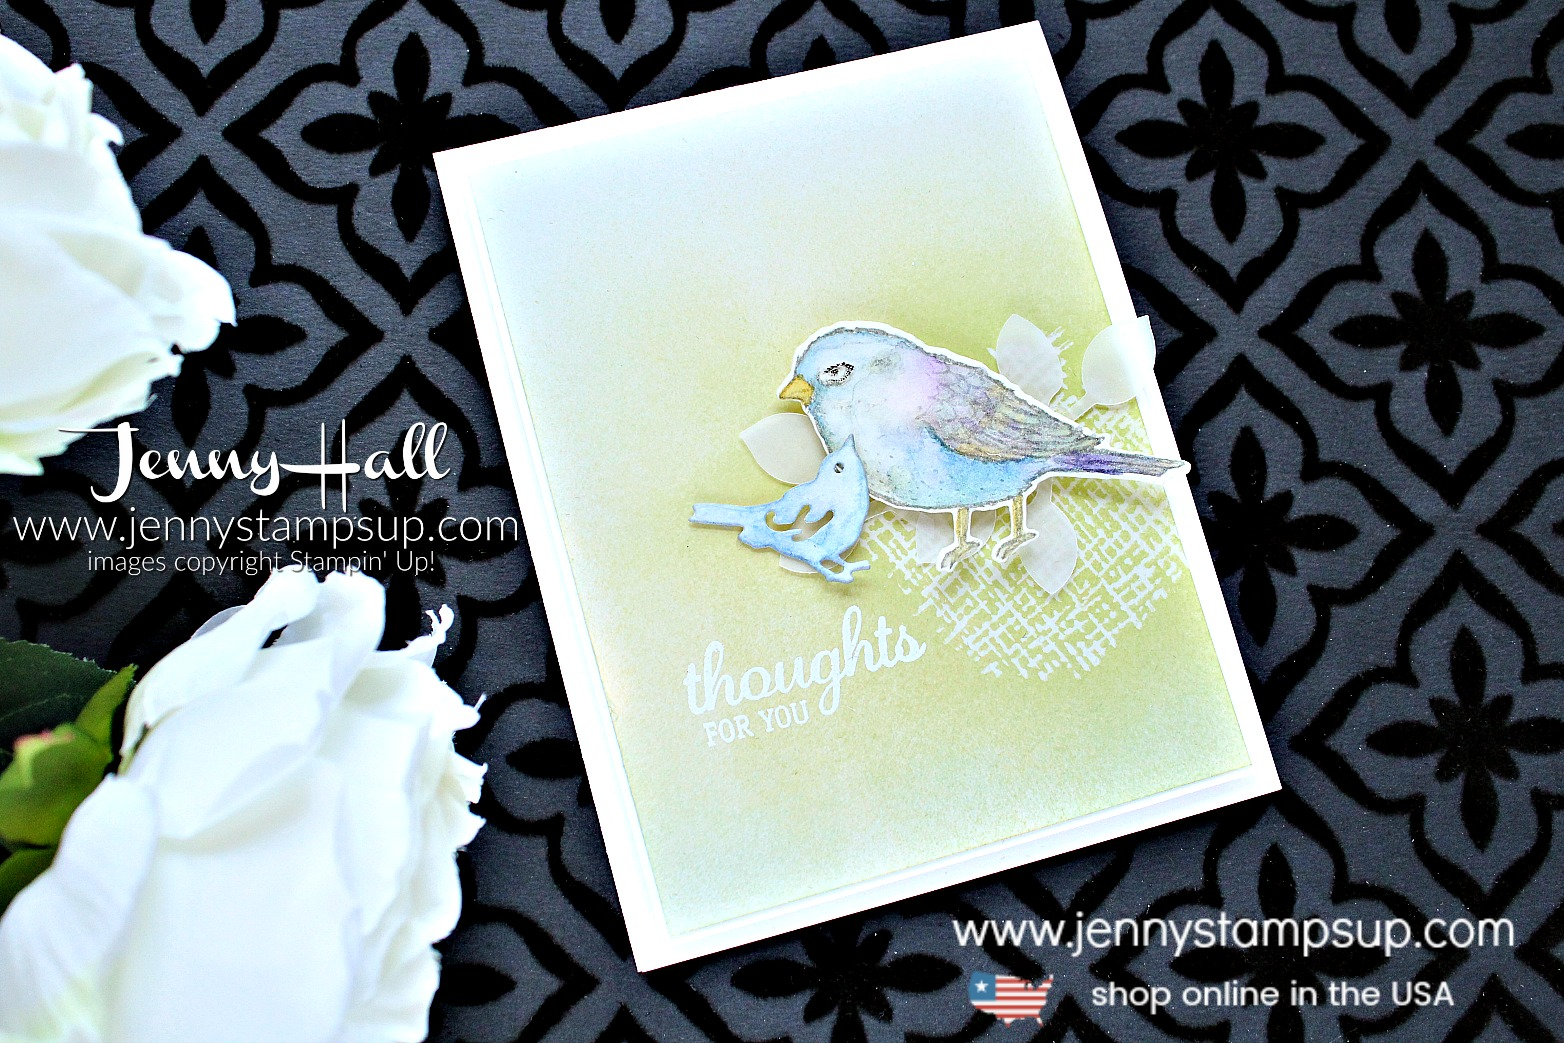 April Creating Kindness Blog Hop card created by Jenny Hall at www.jennystampsup.com for #cardmaking #stamping #stampinup #bestbirds #ombre #brayer #videotutorial #youtuber #craftyyoutuber #videohop #cascards #vellum #jennyhall #jennyhalldesign #jennyhallstampinup #papercrafting #lifestyle #birds #crafts